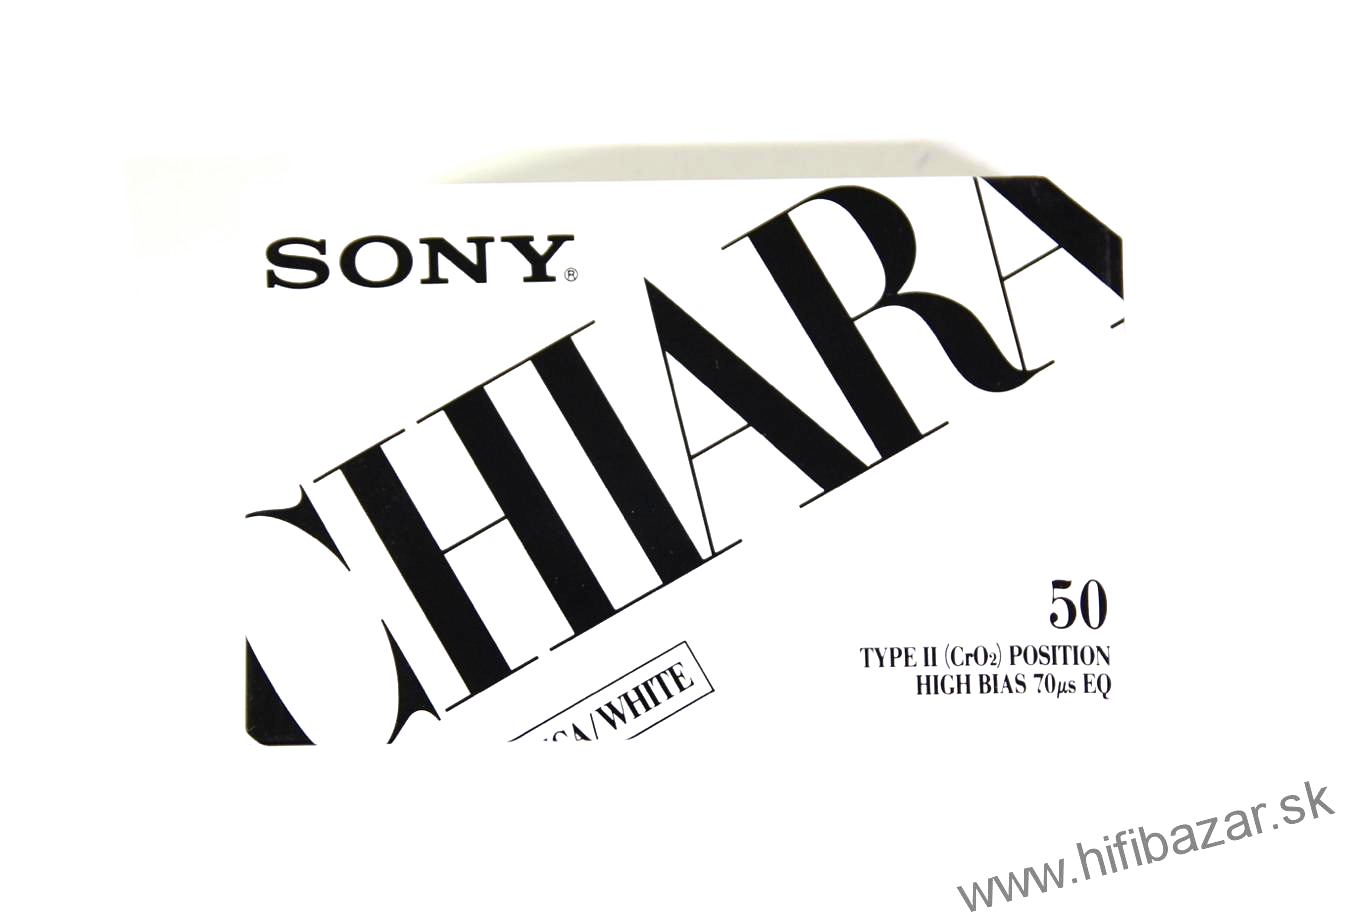 SONY CHIARA UX-50 Position Chrome